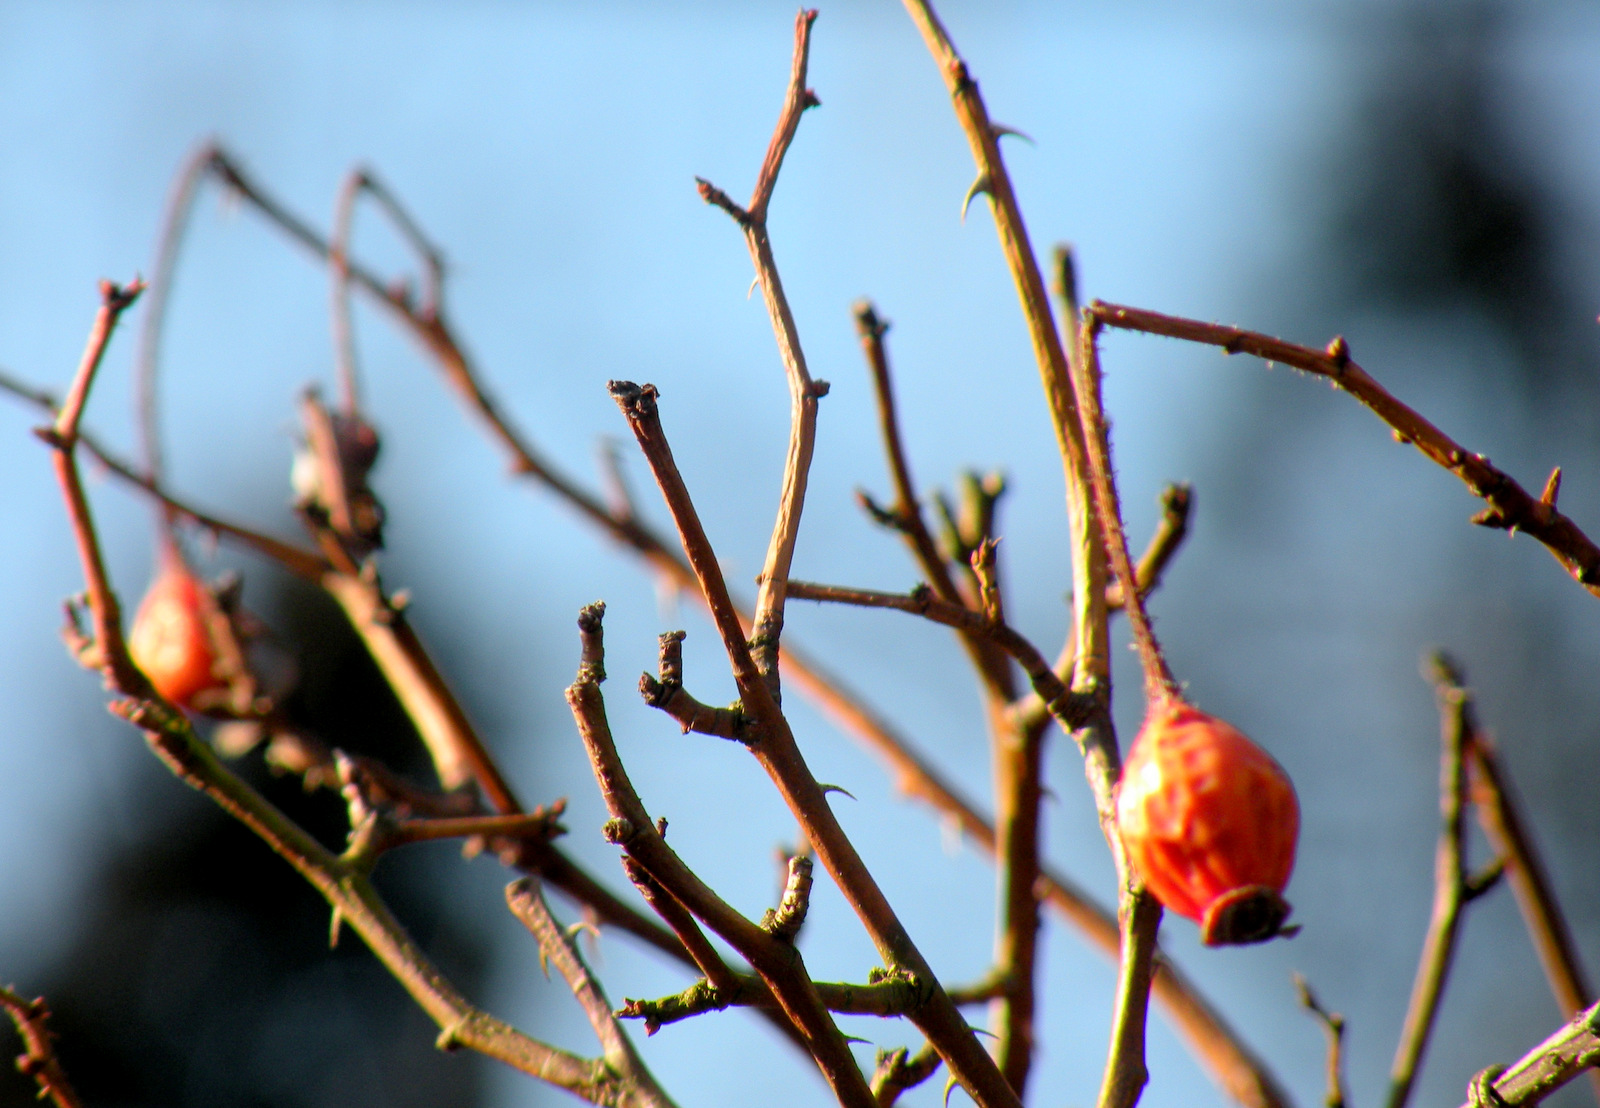 A bright spot for foragers in mid-winter: rosehips. (Photo by Marta Hanson)